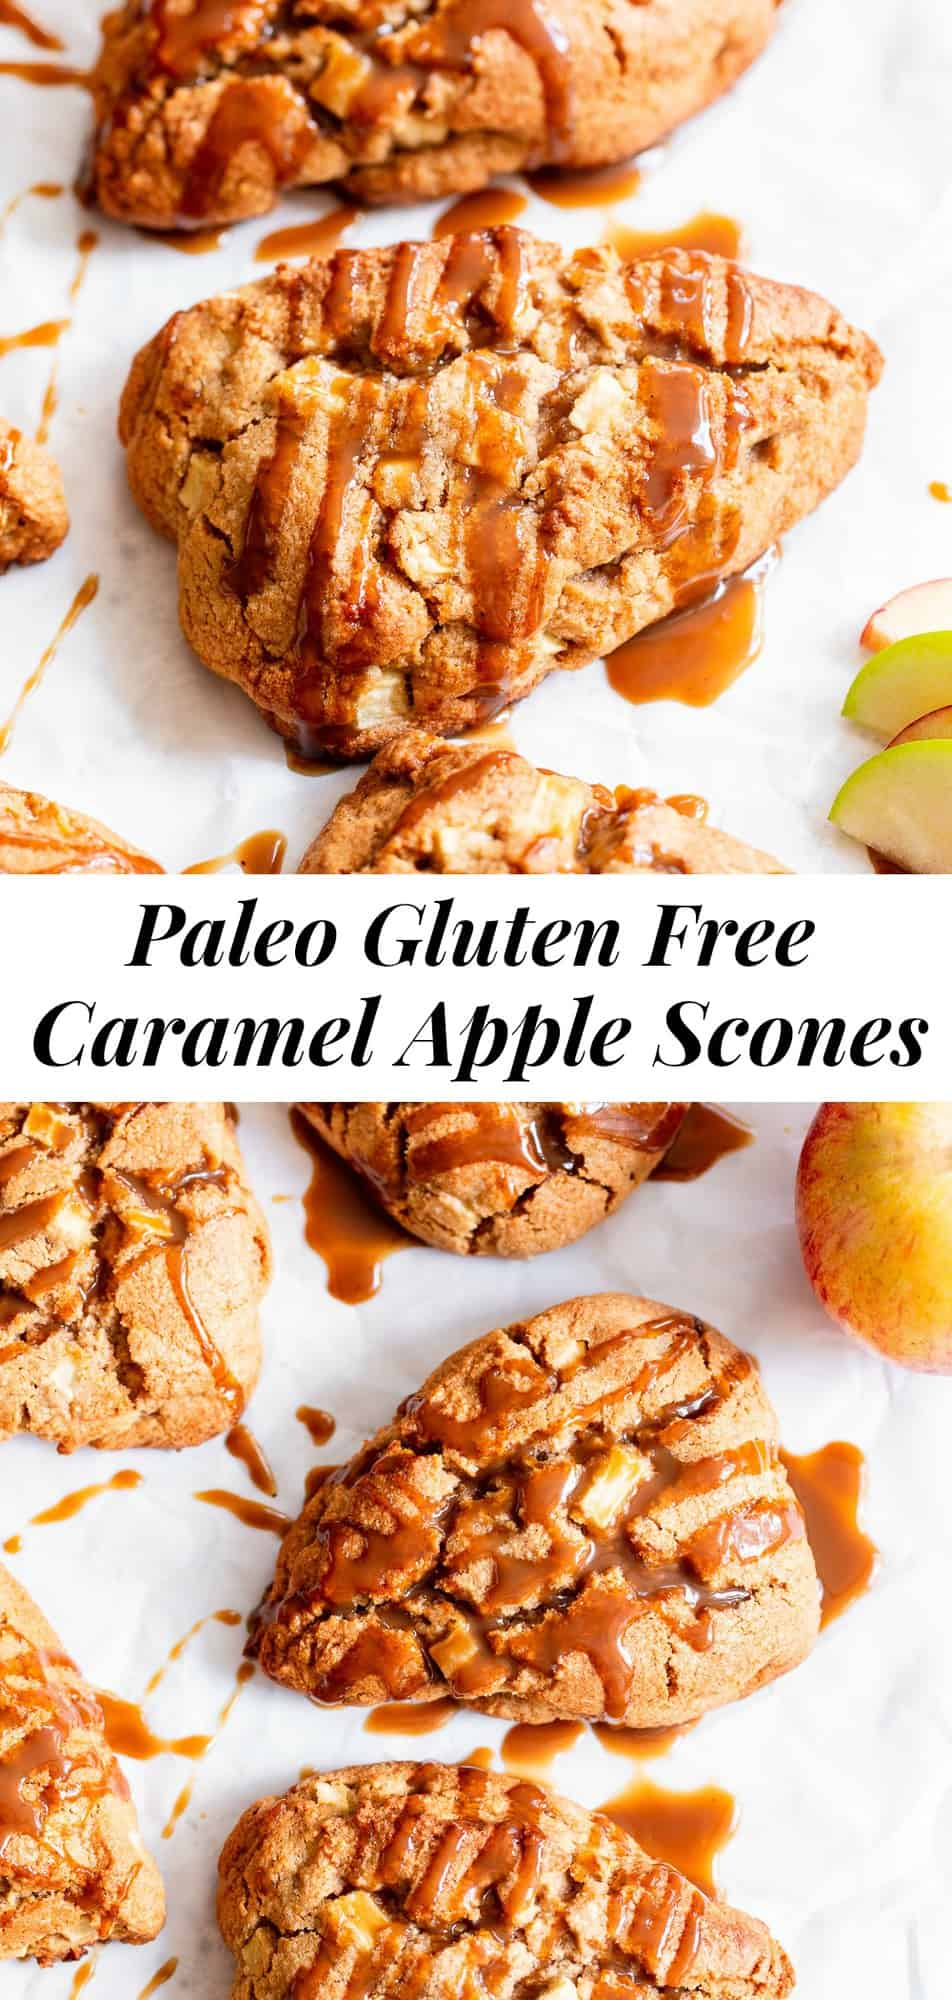 These paleo apple scones are packed with cinnamon flavor and drizzled with a dairy free and paleo caramel sauce that takes them to the next level! Perfect for fall baking at home, as a breakfast or brunch treat or afternoon snack. Kid friendly, gluten free, grain free and dairy free options. #paleo #glutenfree #paleobaking #scones